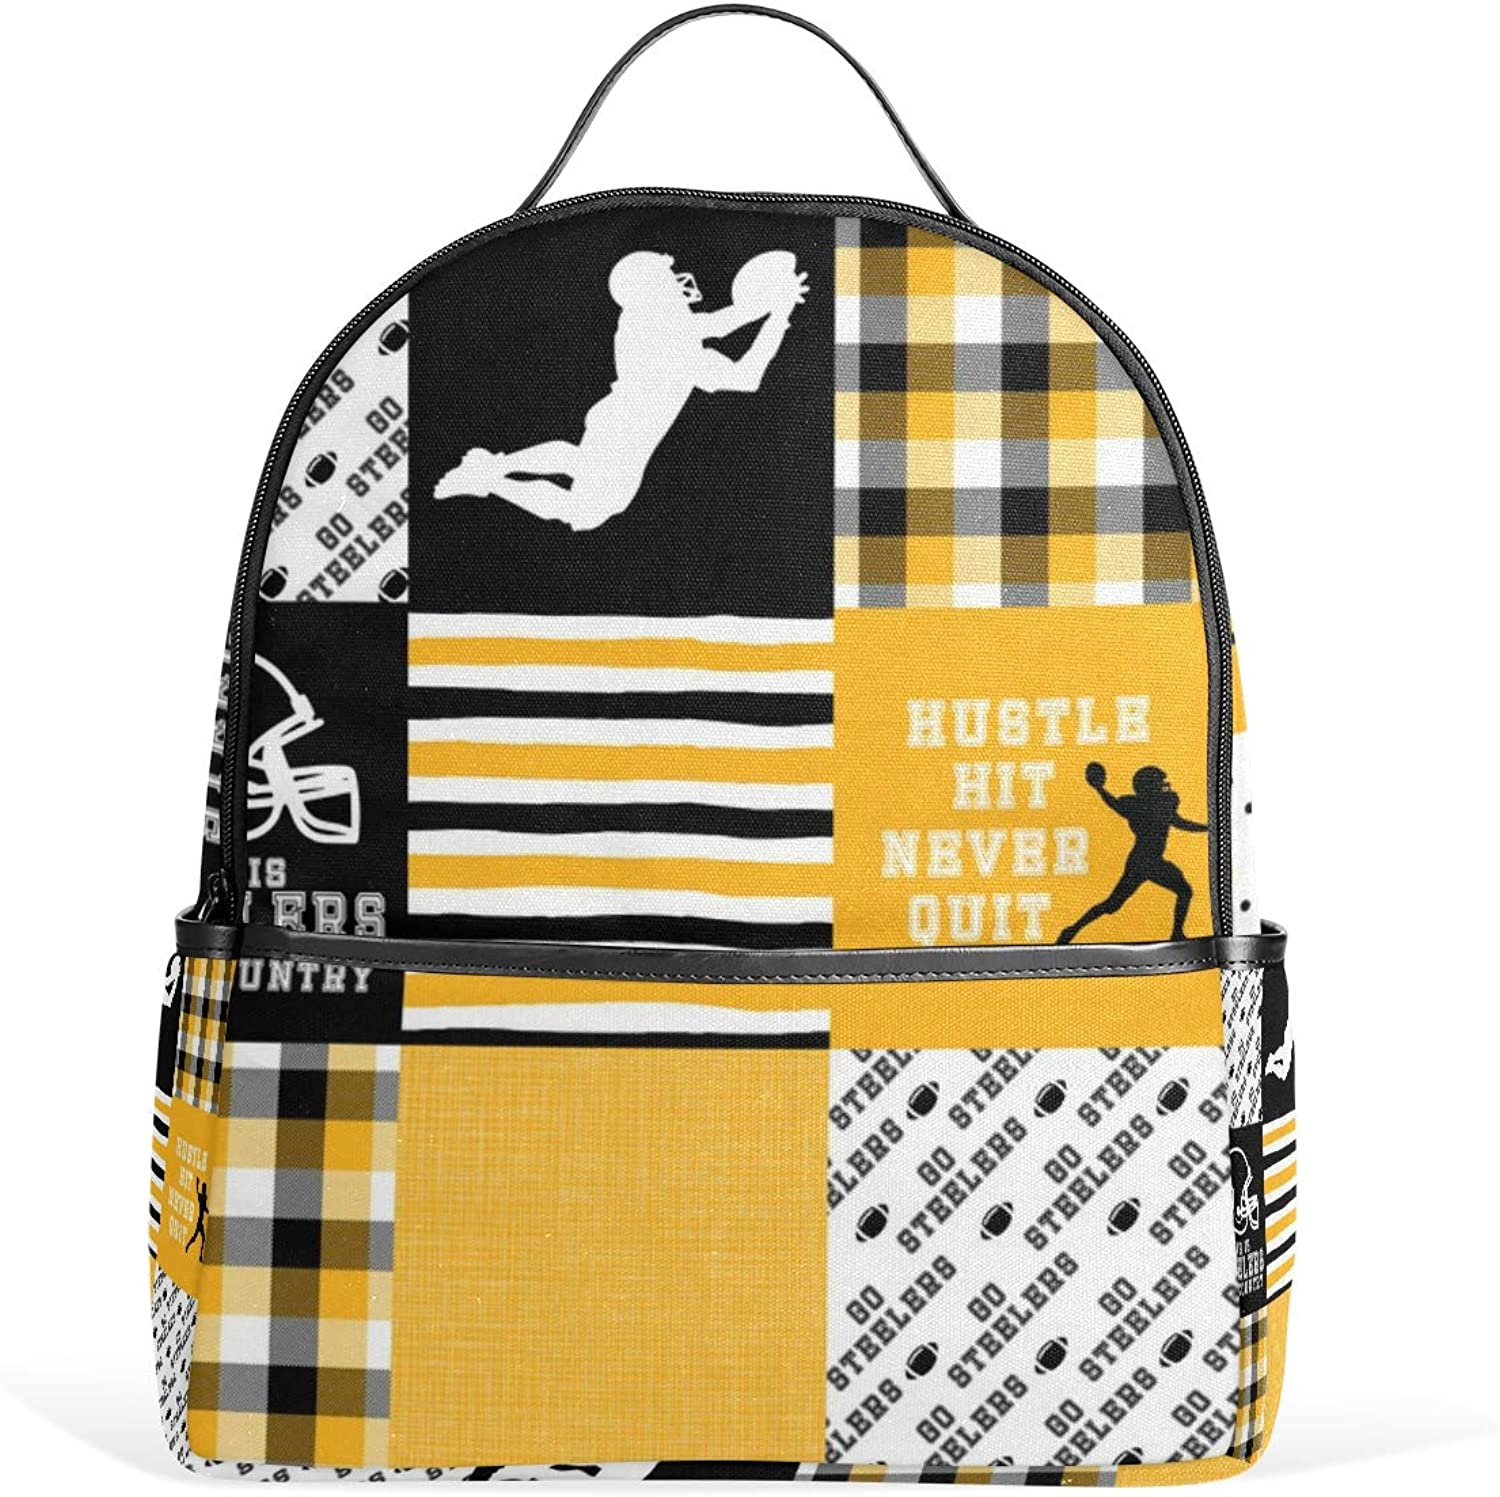 Footballhustle Hit Never Quit Steelers Wholecloth Cheater Quilt Backpack for Men Women Back Pack Shoulder Bag Daypacks Teenagers's Travel bagpacks Casual Daypack for Travel